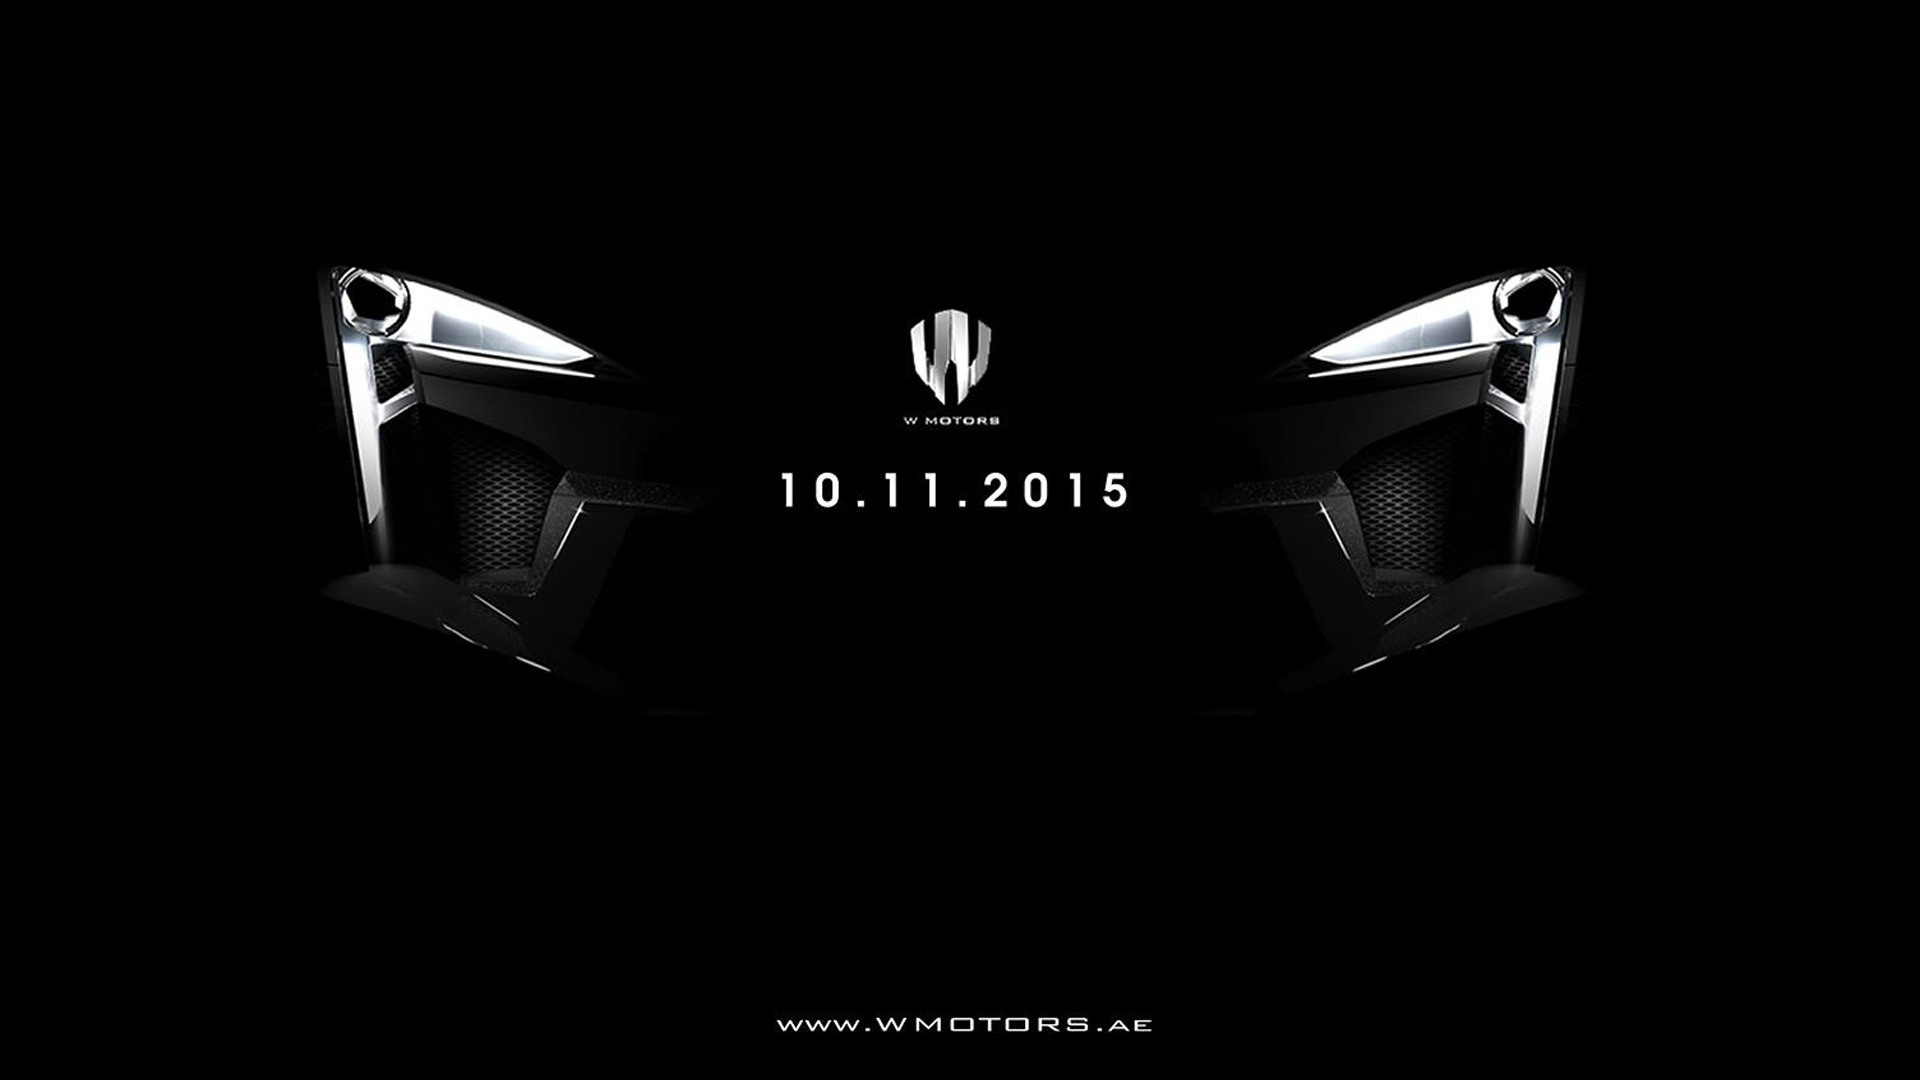 Teaser for W Motors Fenyr Supersport debuting at 2015 Dubai Motor Show